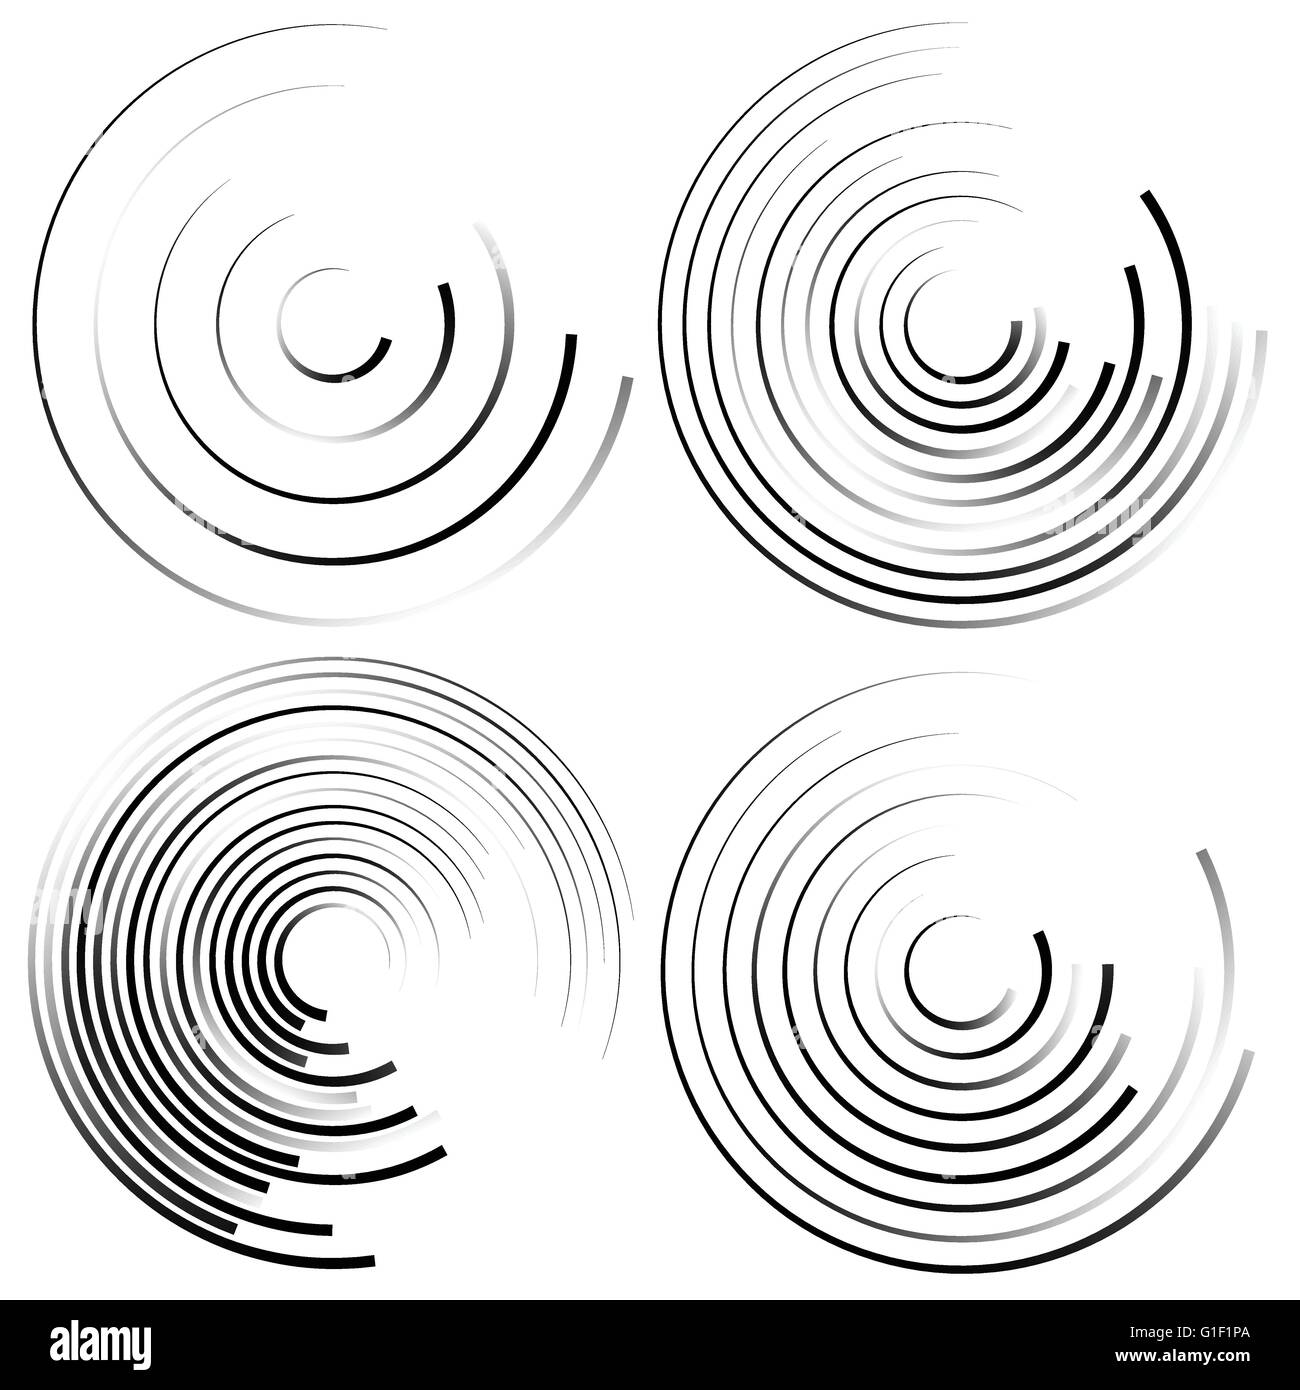 Abstract spiral shapes - Spirally, whirling circular element set. - Stock Vector